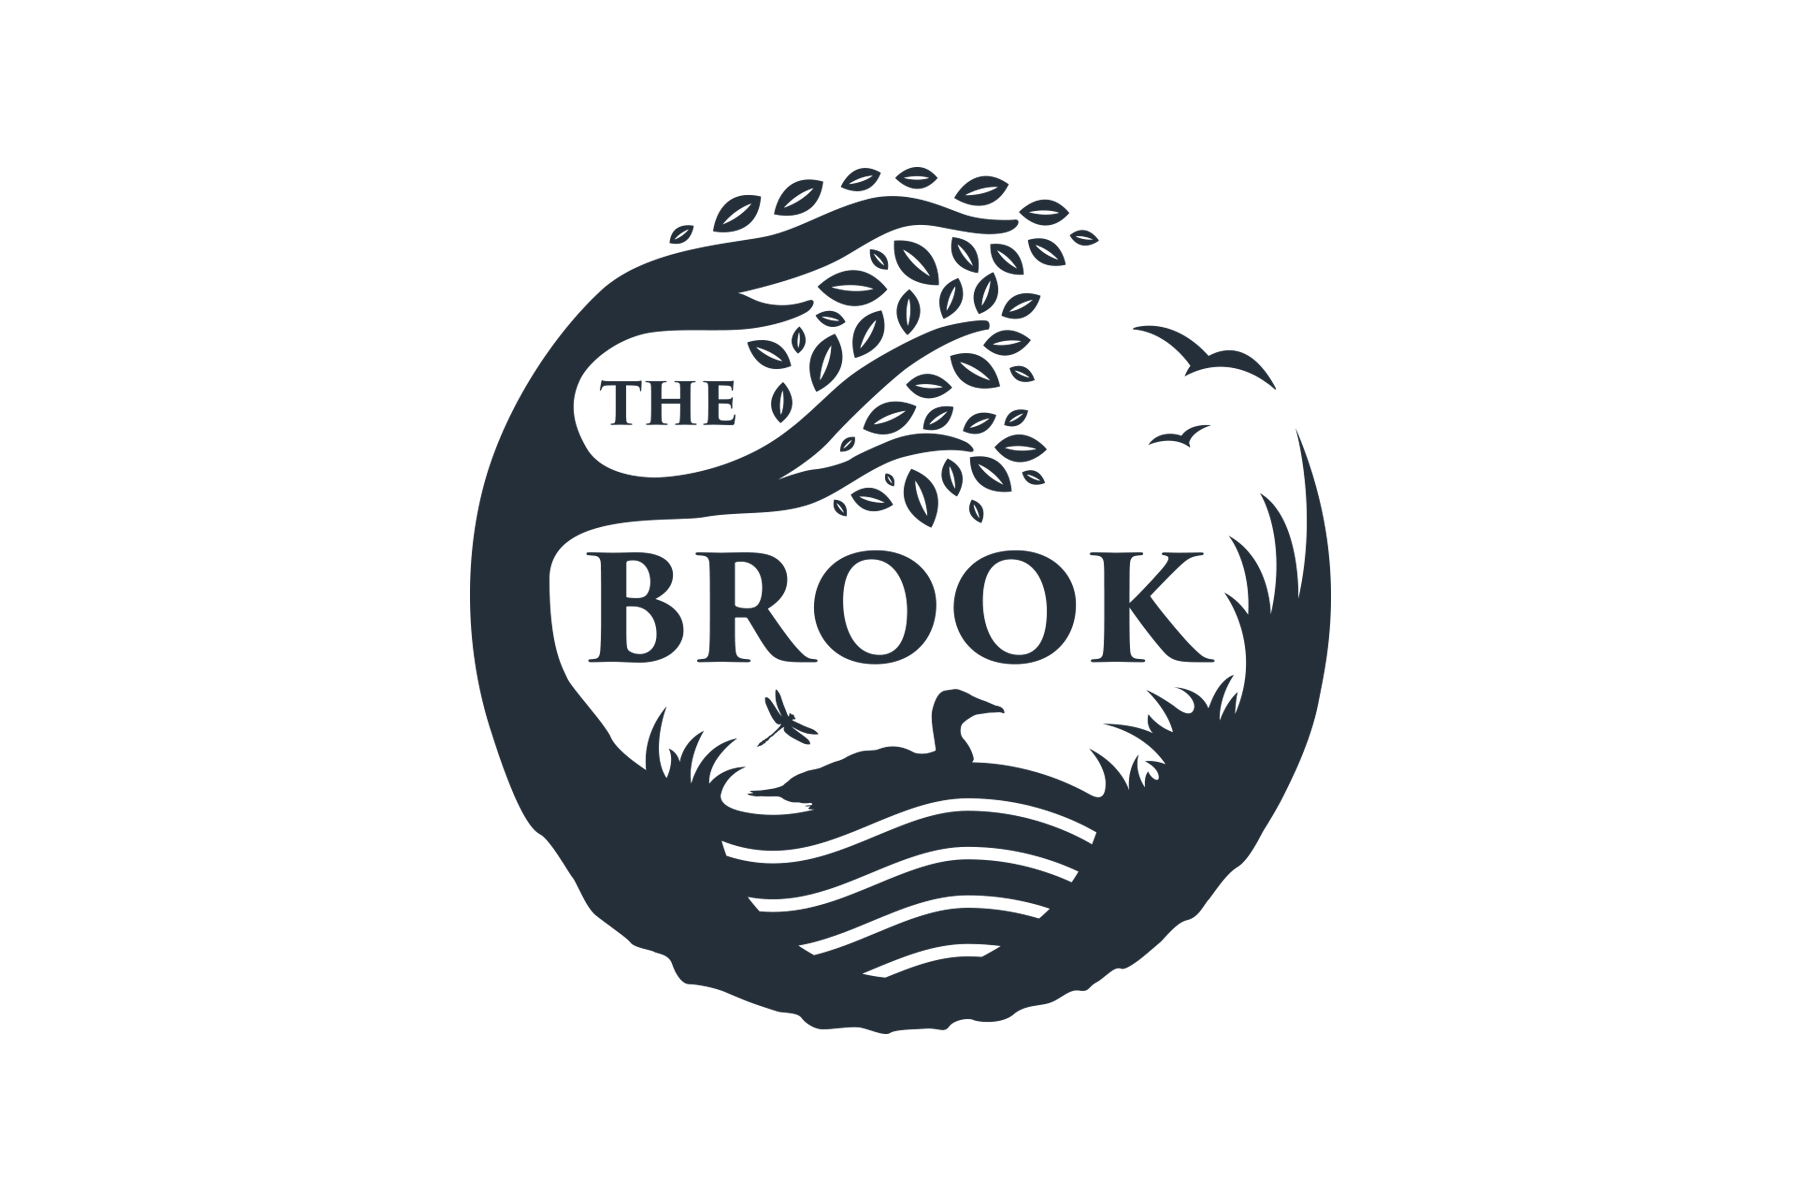 The Brook Logo